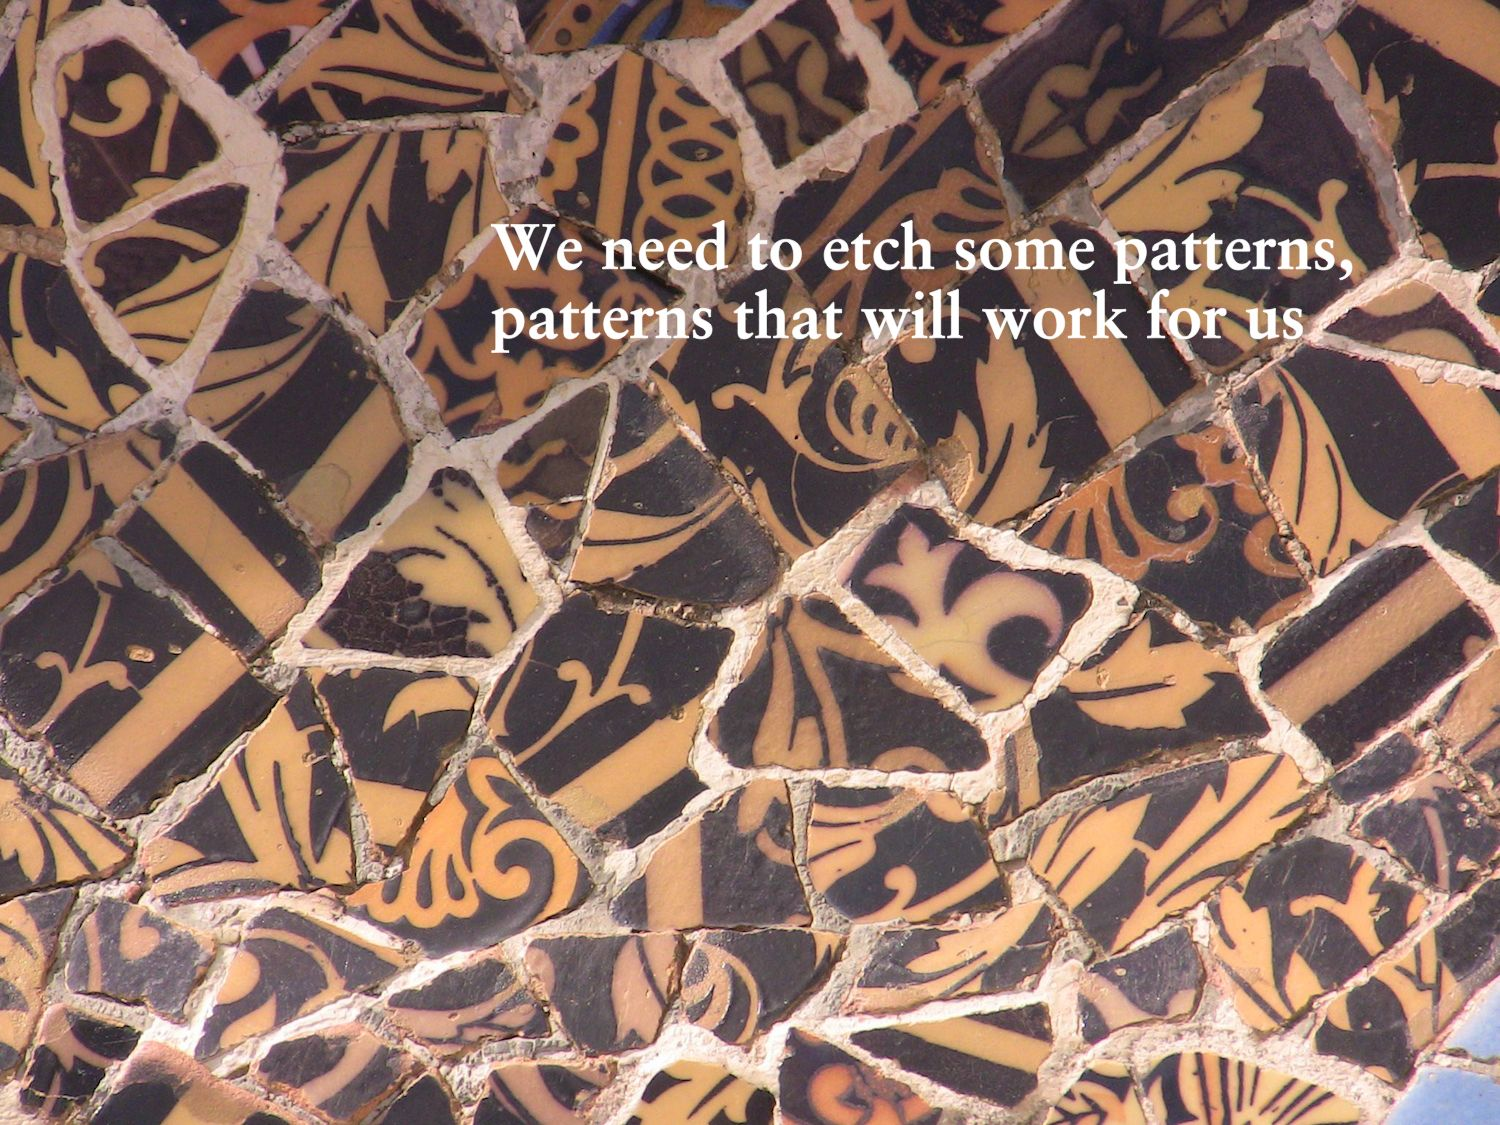 We need to etch some patterns.jpg